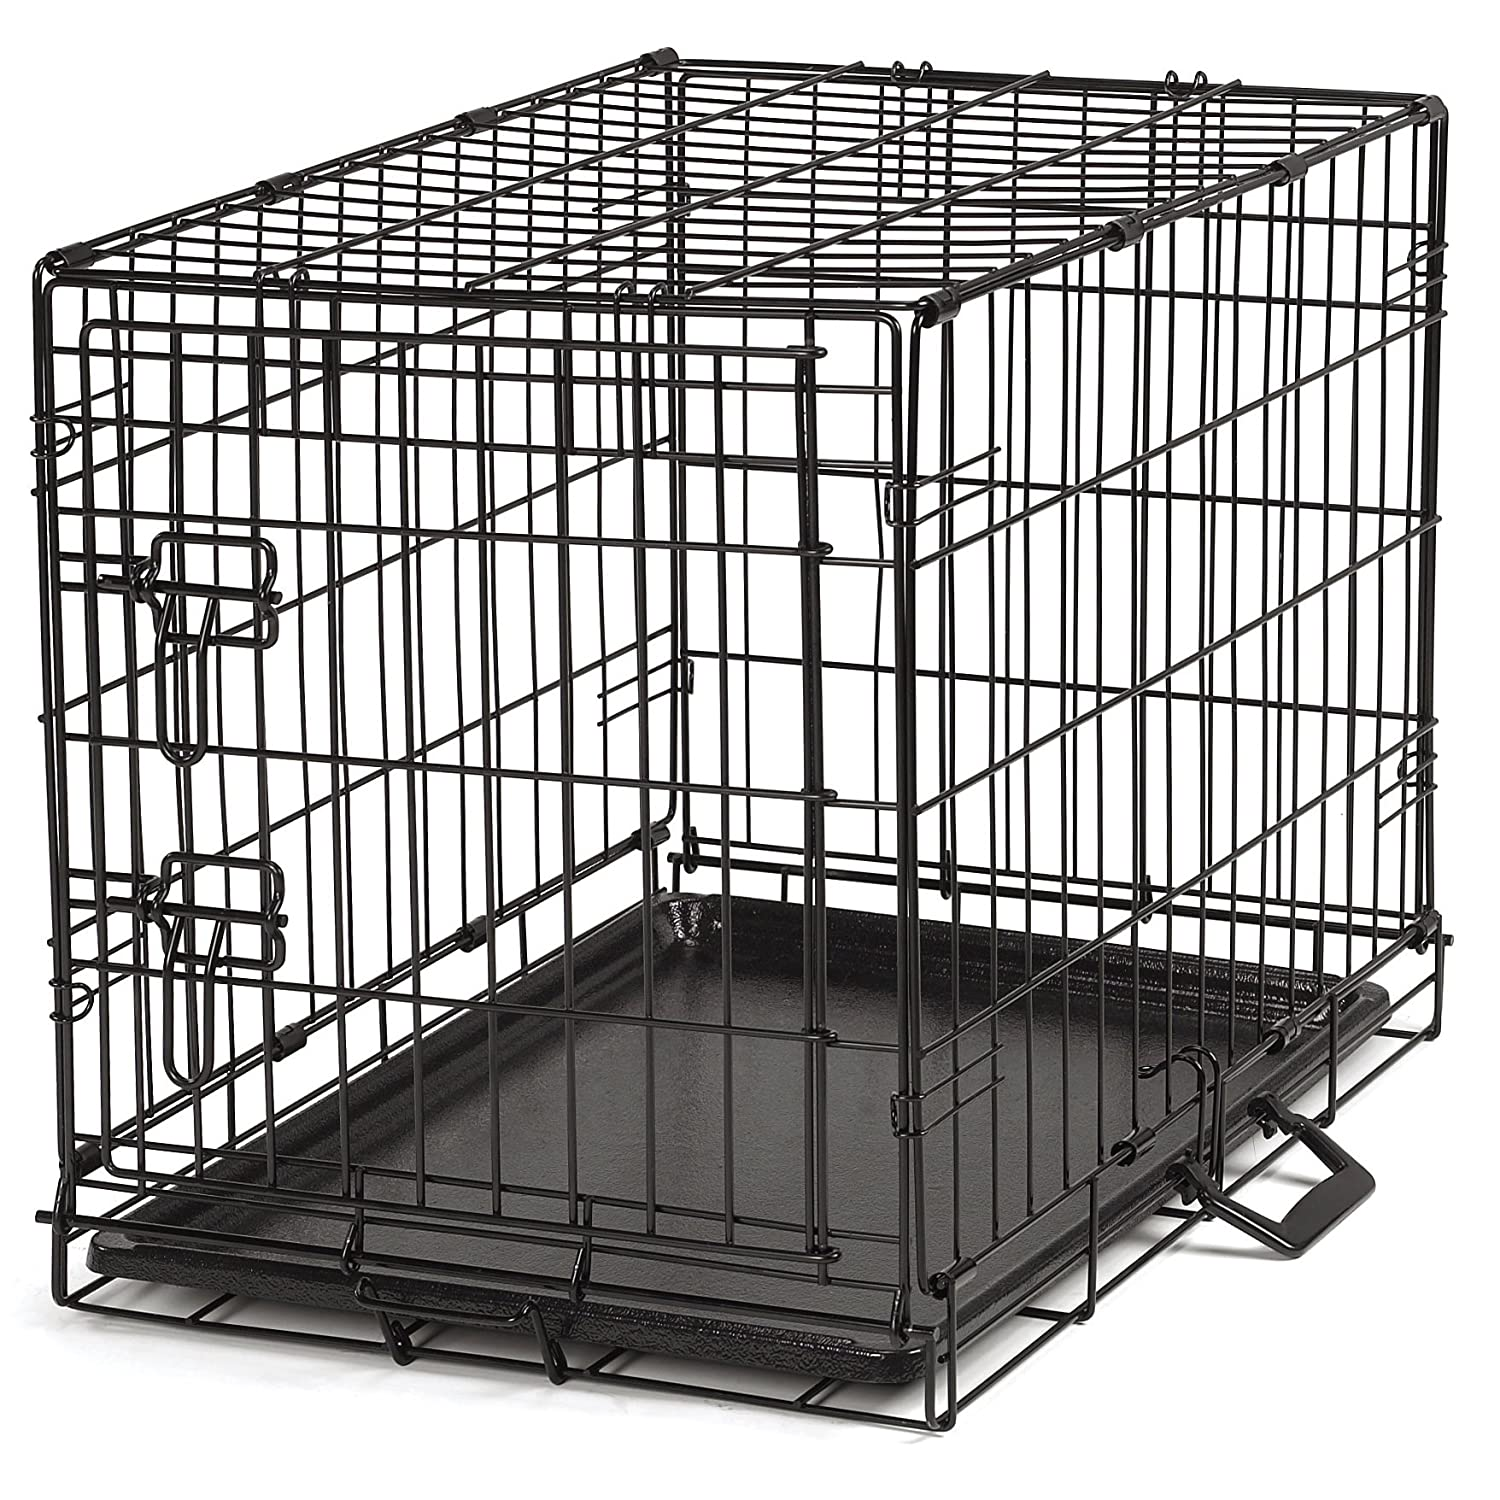 Amazon.com : ProSelect Easy Dog Crates for Dogs and Pets - Black; Small,  Medium, Medium-Large, Large, Extra Large : Pet Crates : Pet Supplies